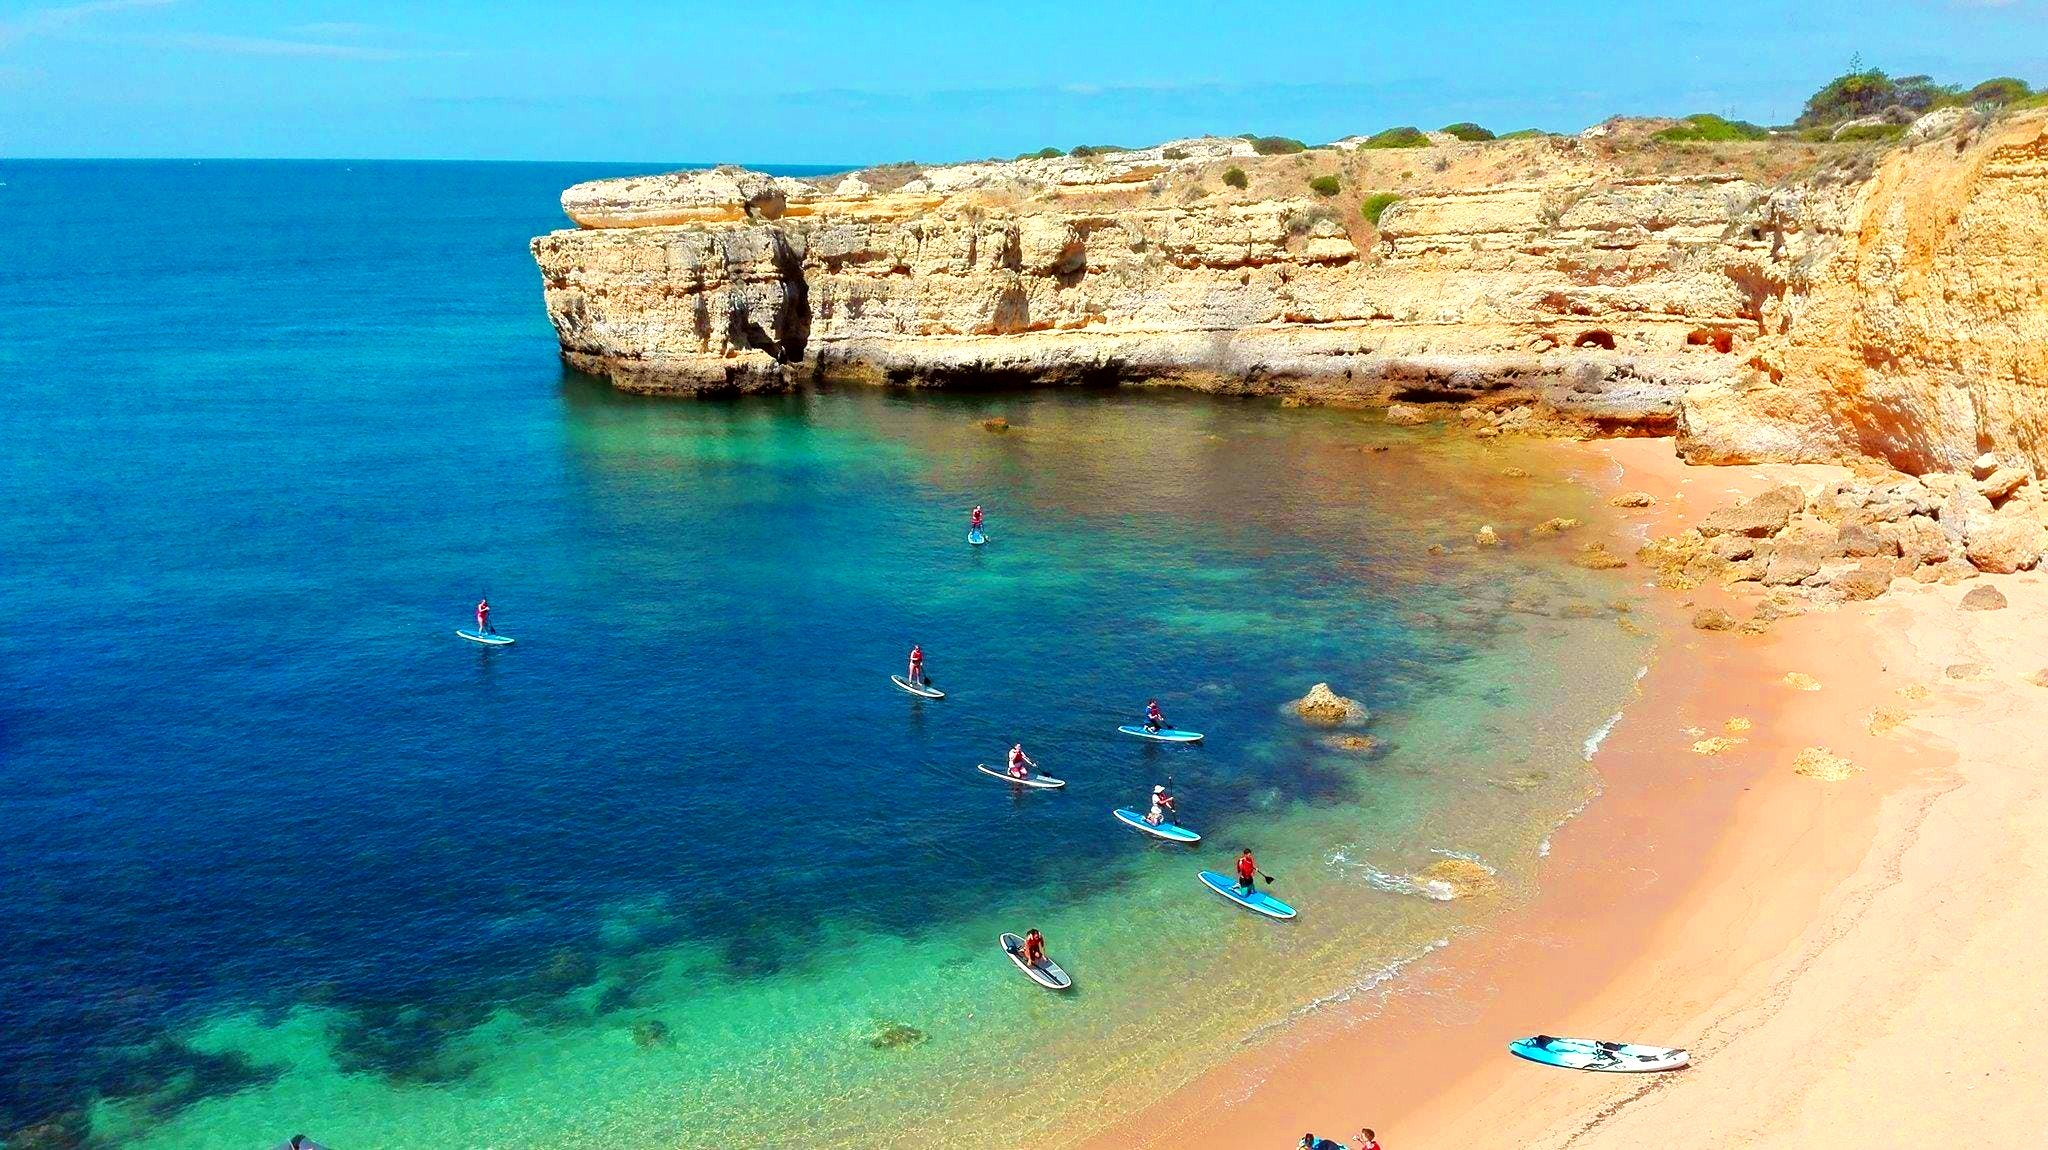 A group of people are coming to a beach during a sup tour in the Algarve.